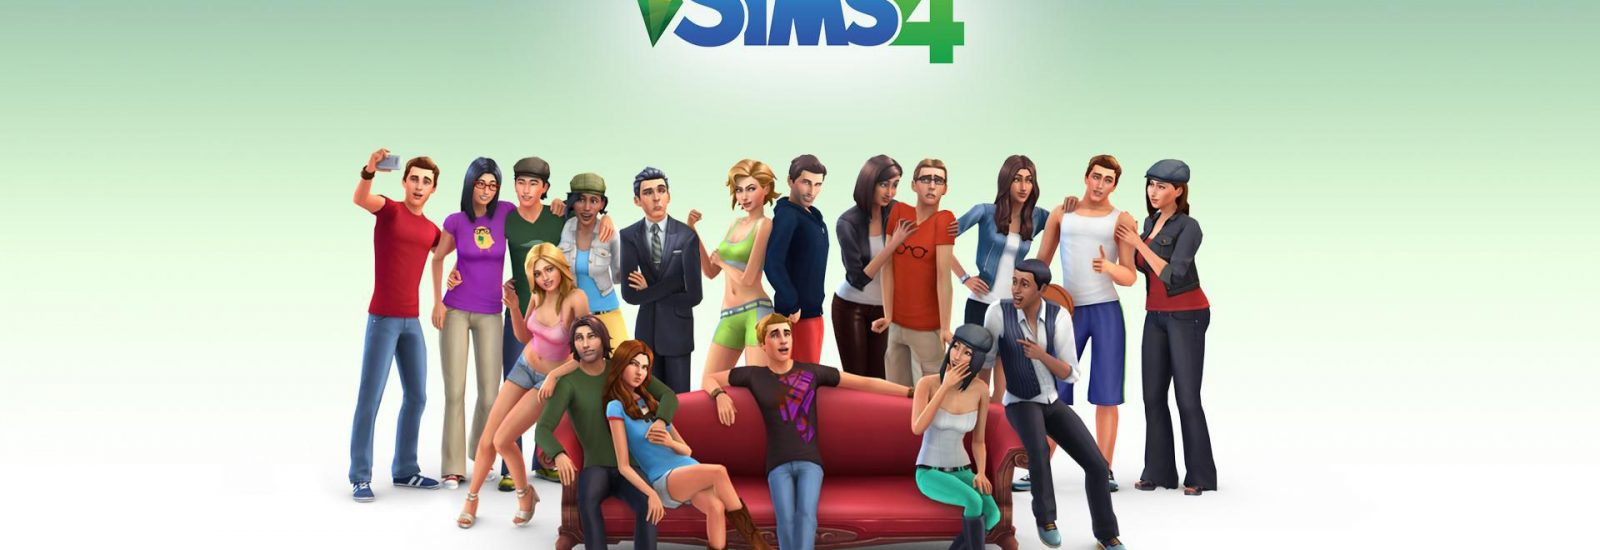 The Sims 4: DLC Bundle 4